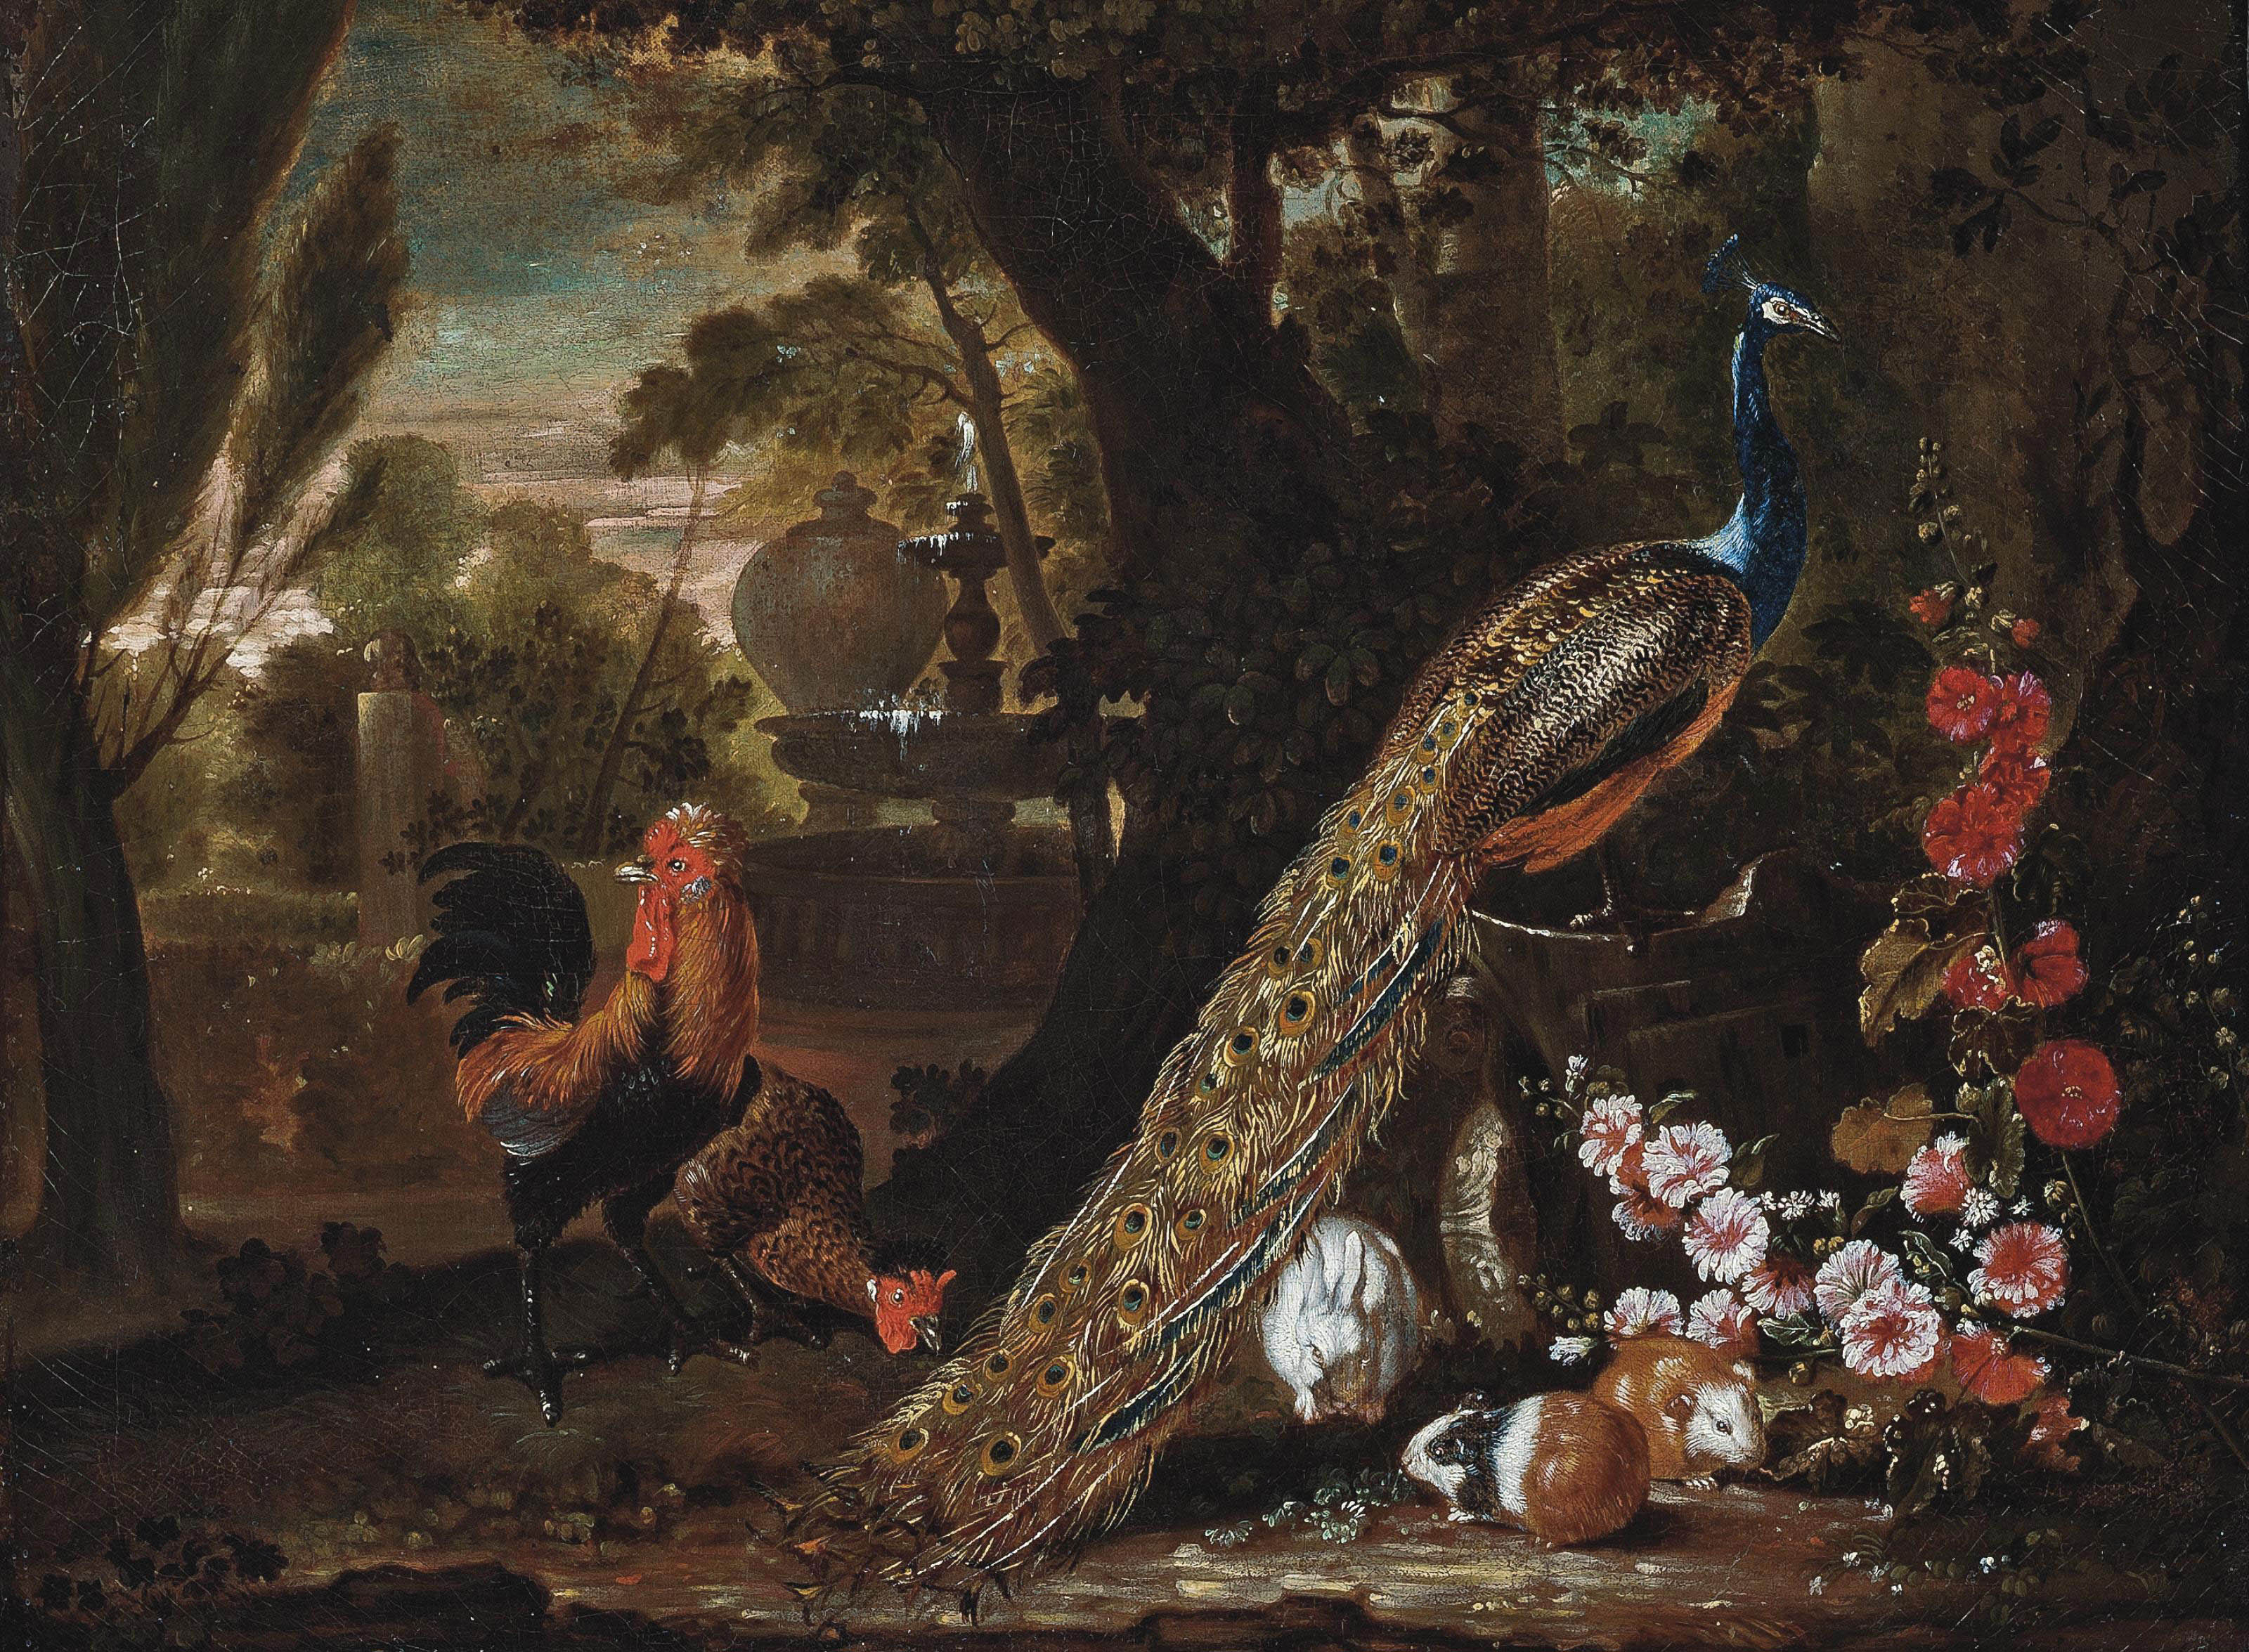 A peacock and cockerels, with guinea pigs and a rabbit, in a wooded park